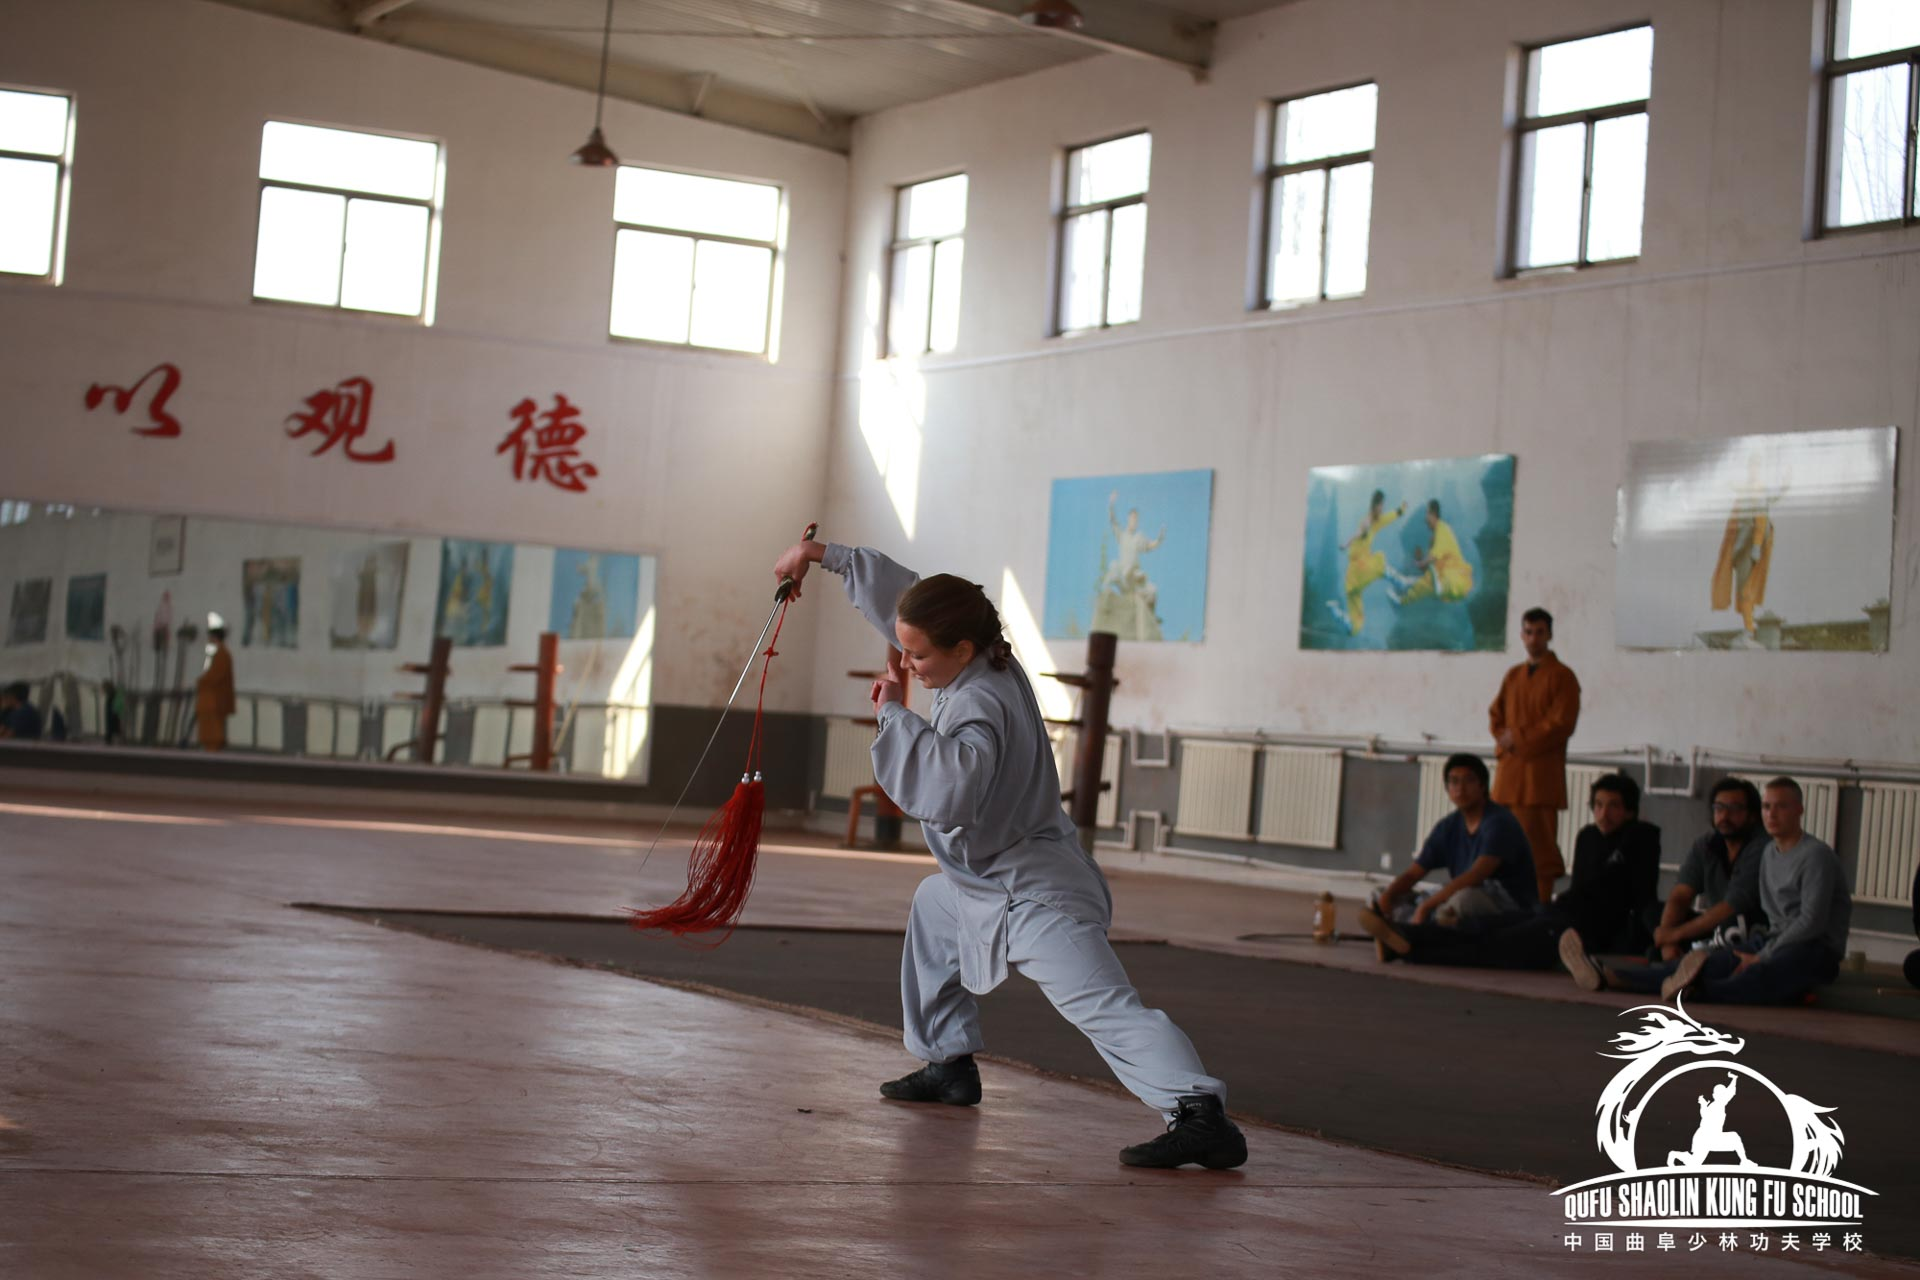 Grading five steps Kung Fu Form in Qufu Shaolin kung fu school